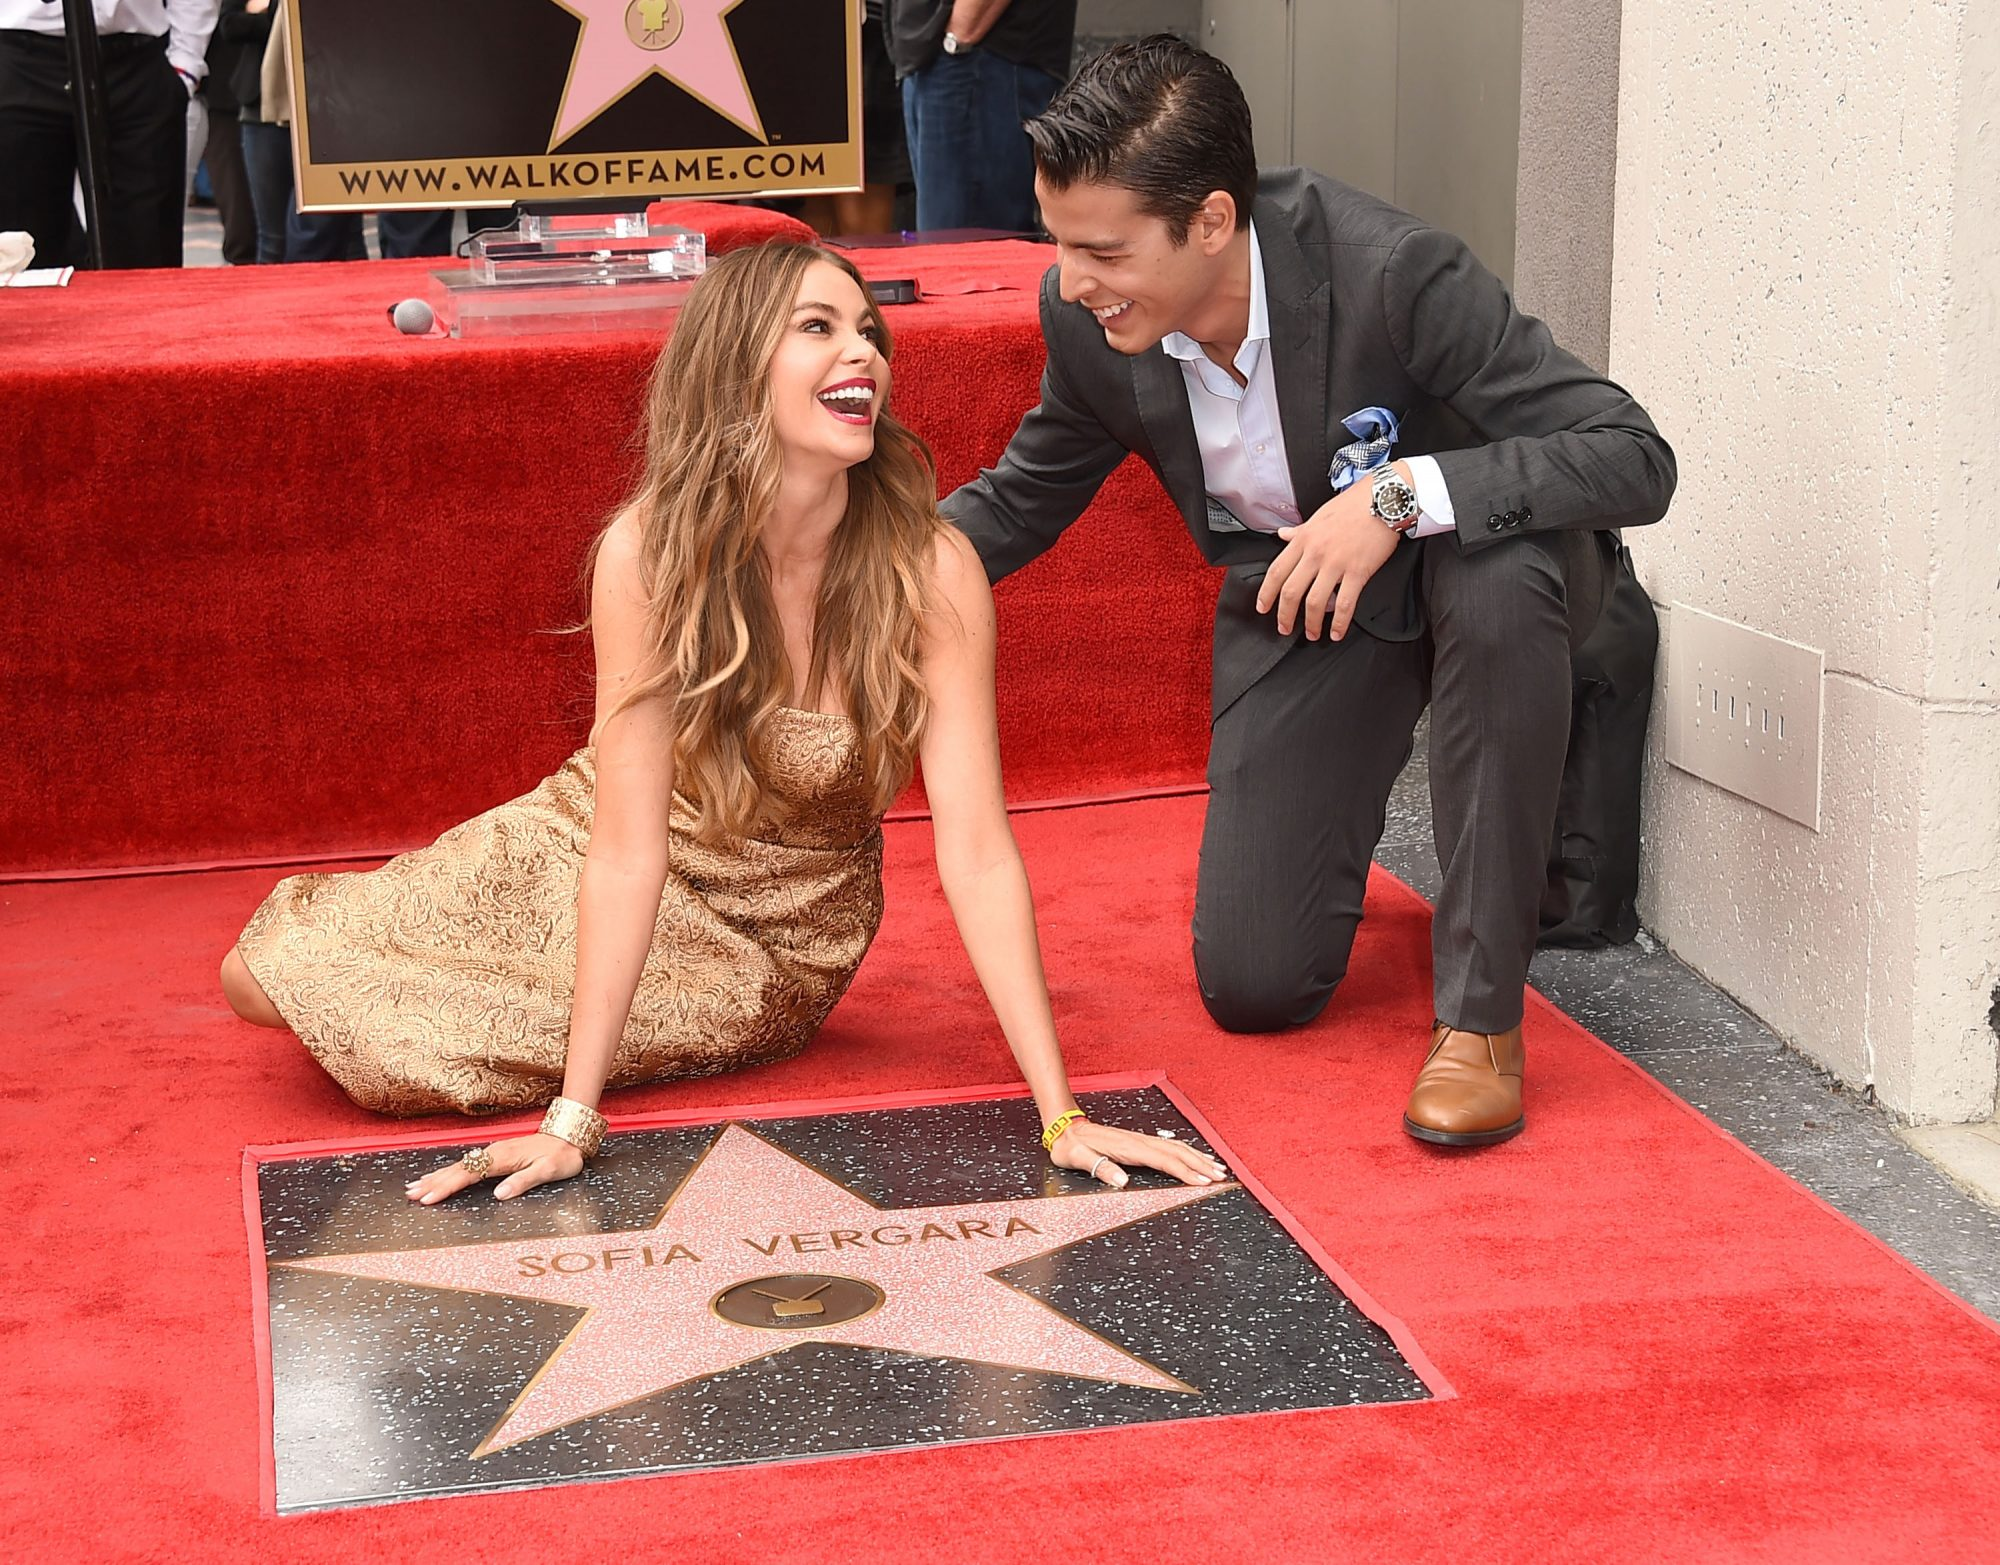 Sofia Vergara Honored With Star On The Hollywood Walk Of Fame